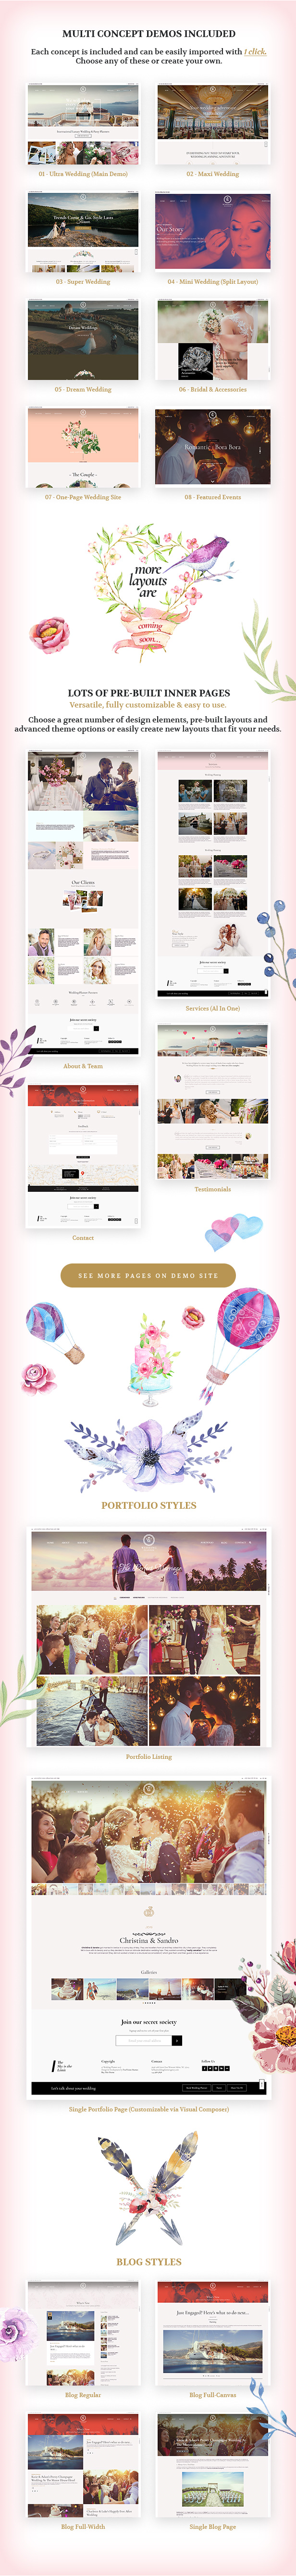 Wedding Planner - Responsive WordPress Theme - 7